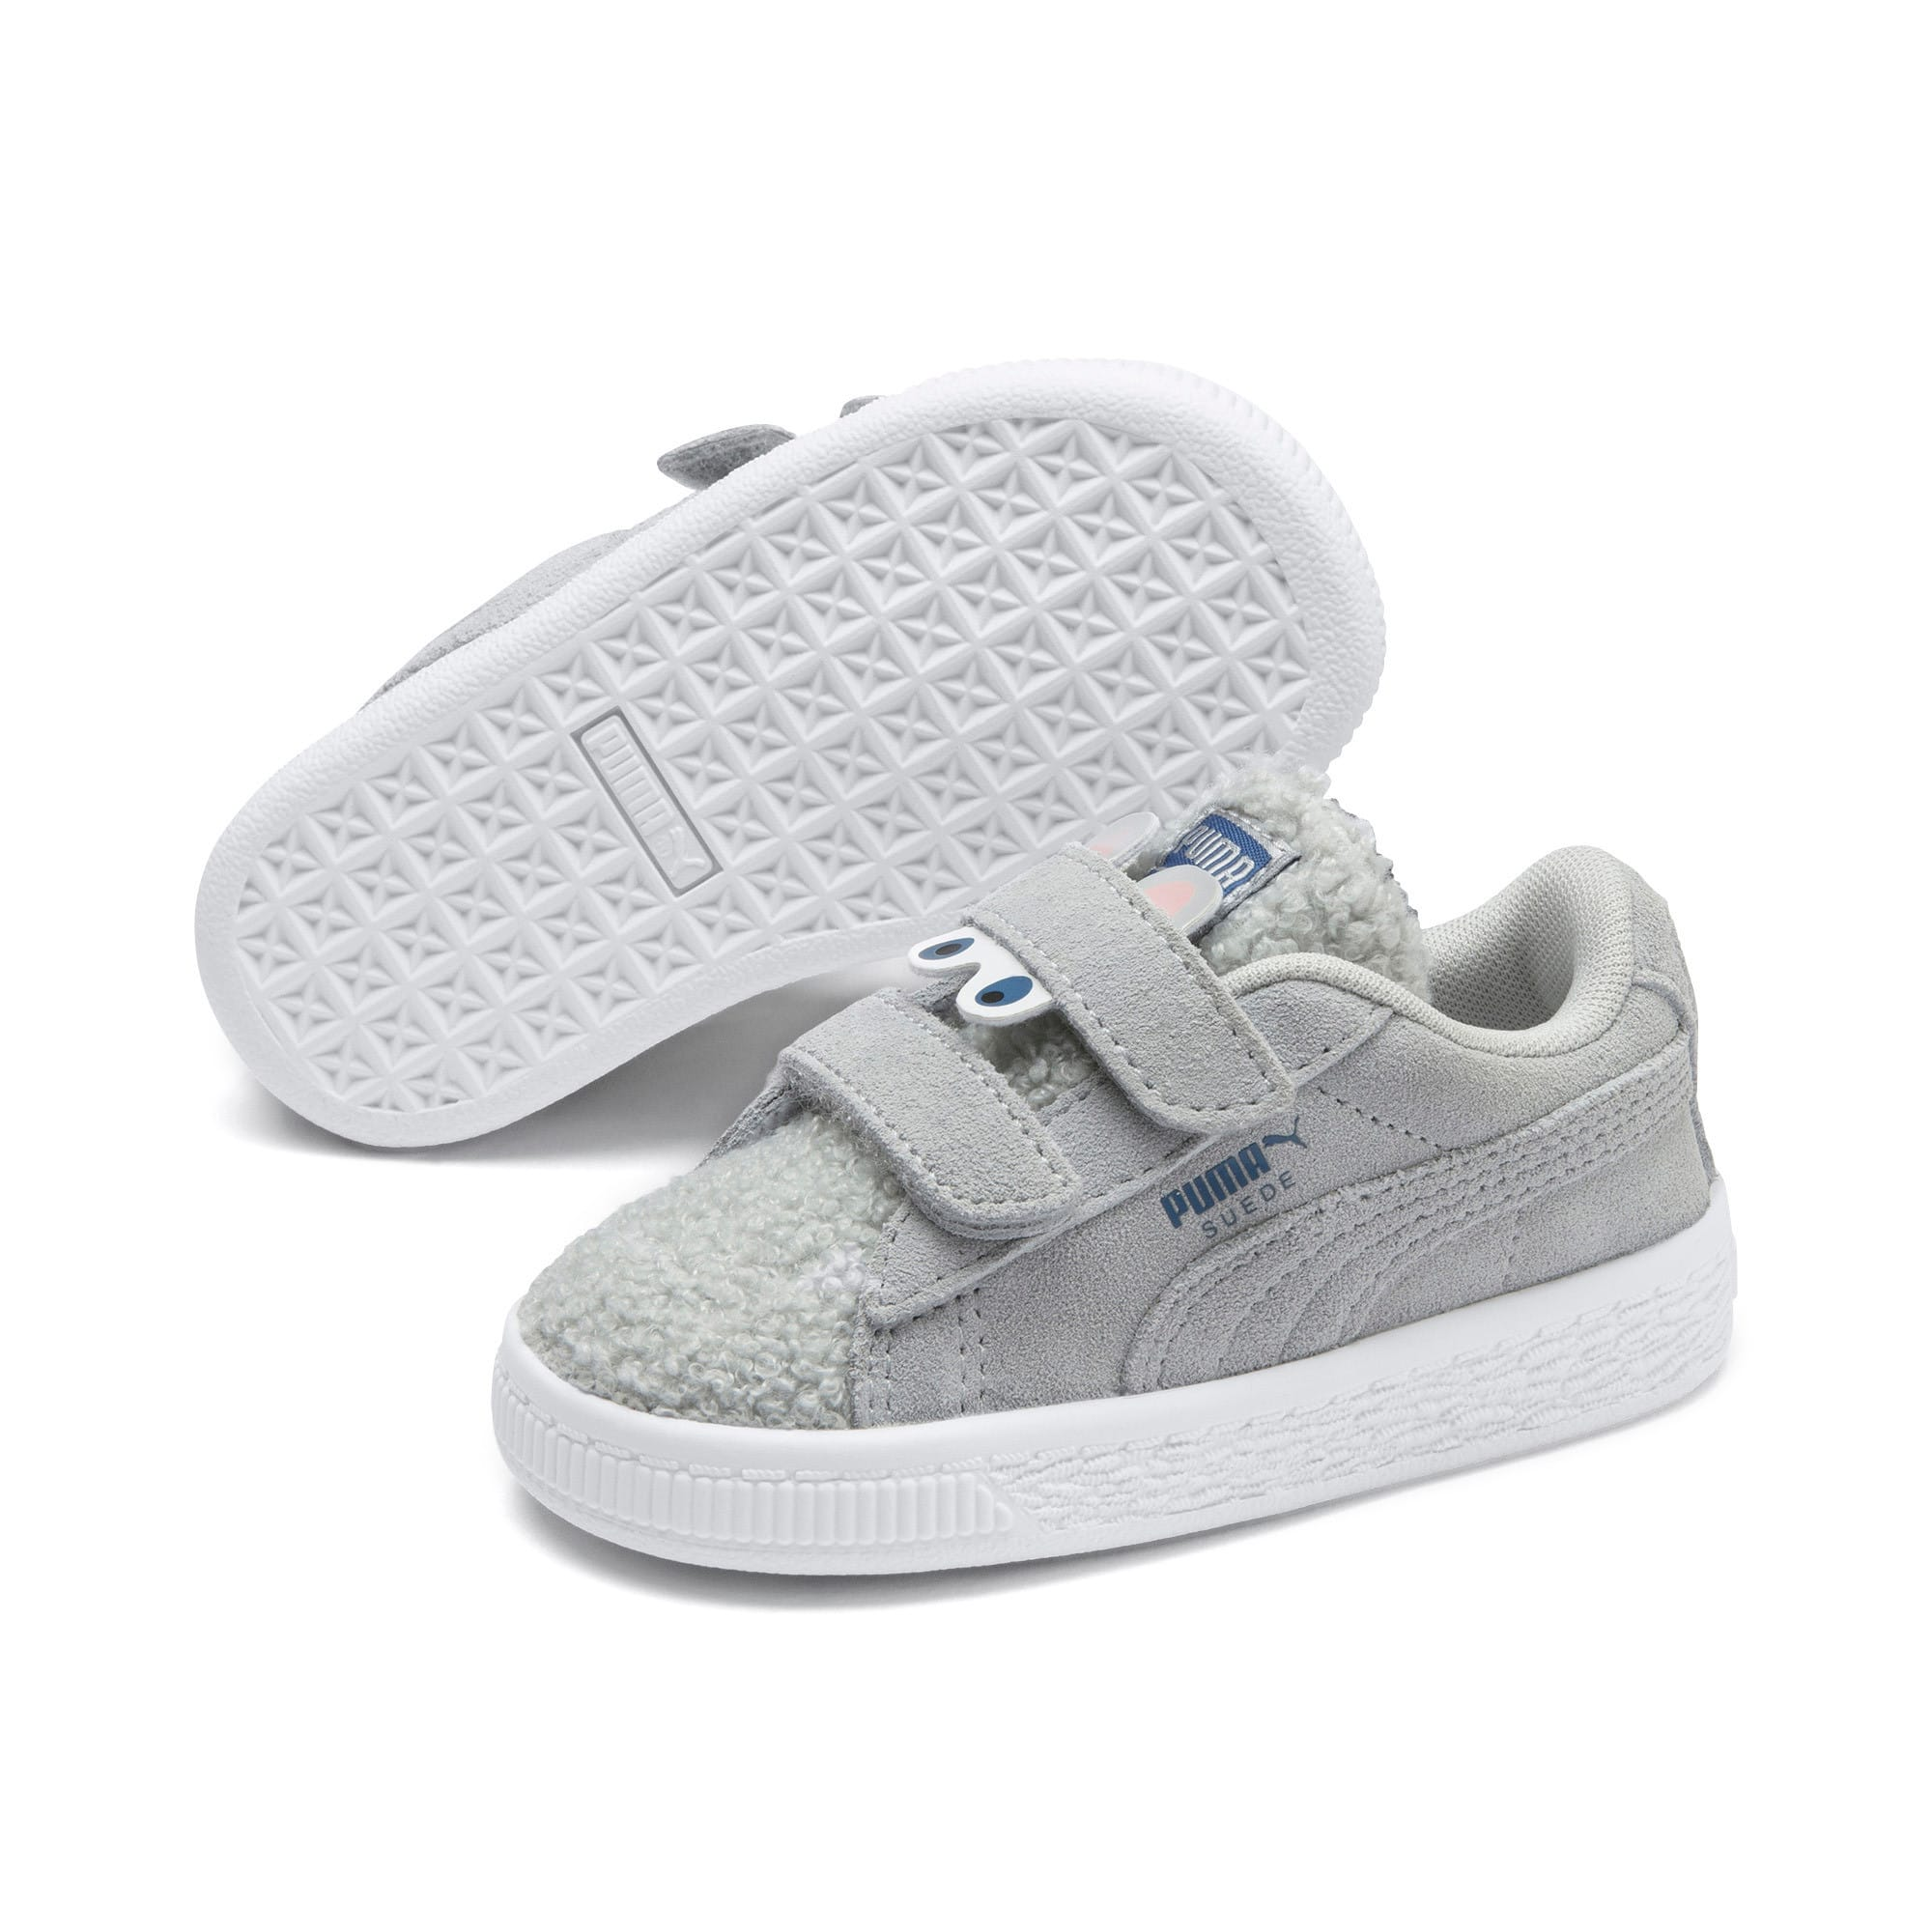 Thumbnail 2 of Suede Winter Monster Babies' Trainers, High Rise-Galaxy Blue, medium